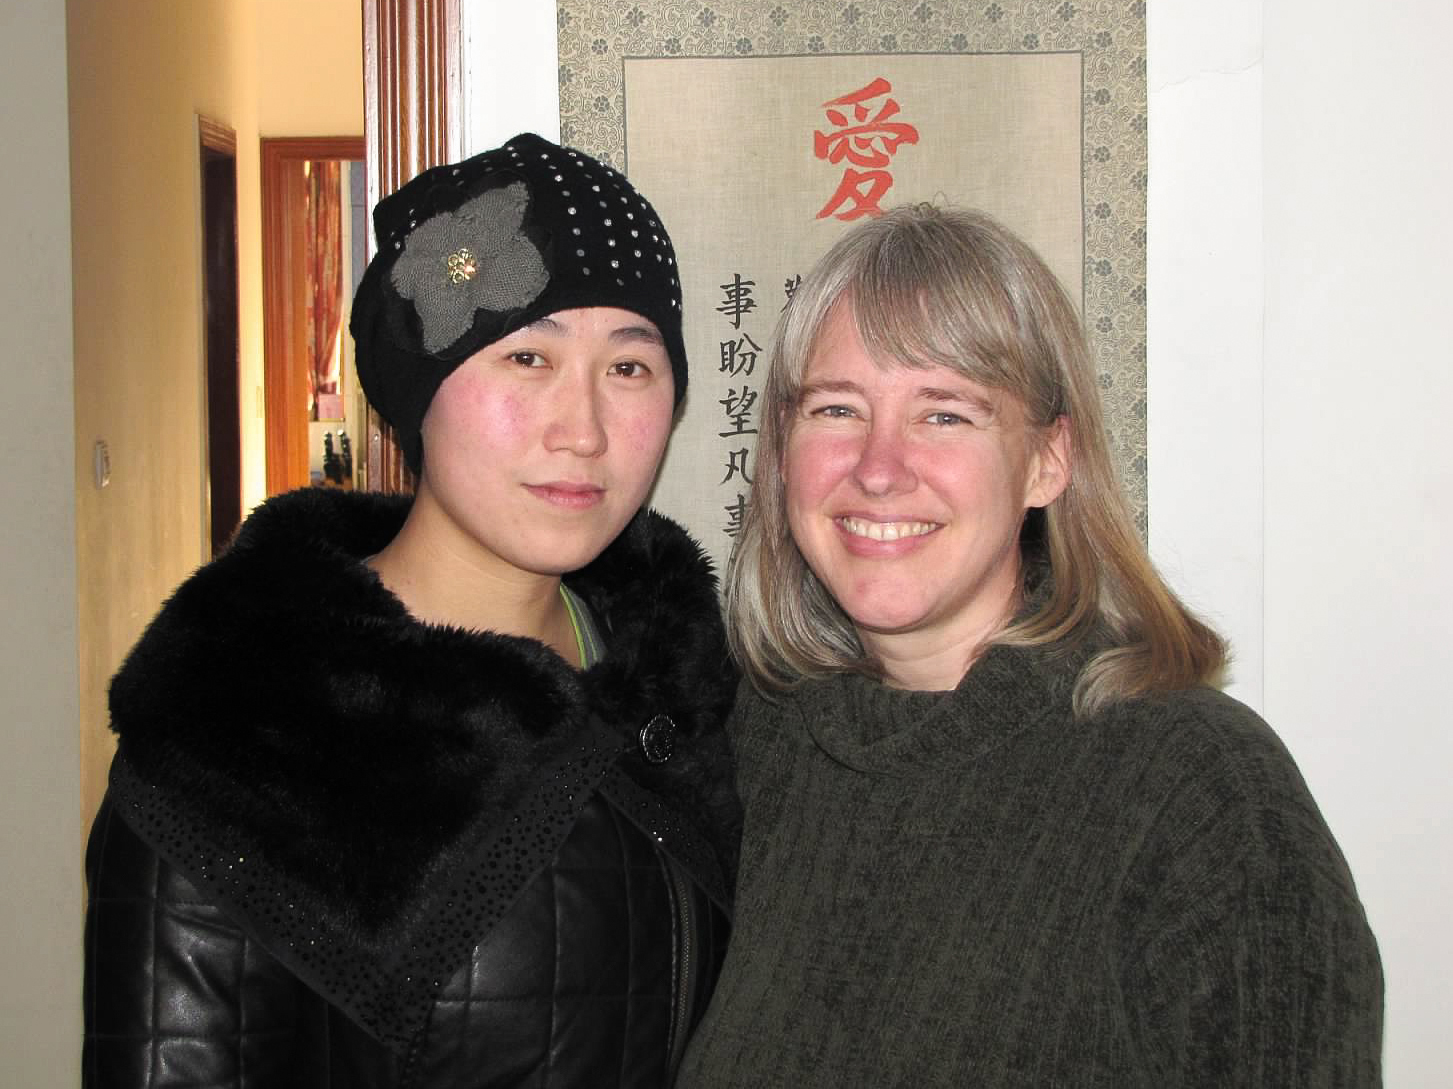 Jodie and her best friend in western China.